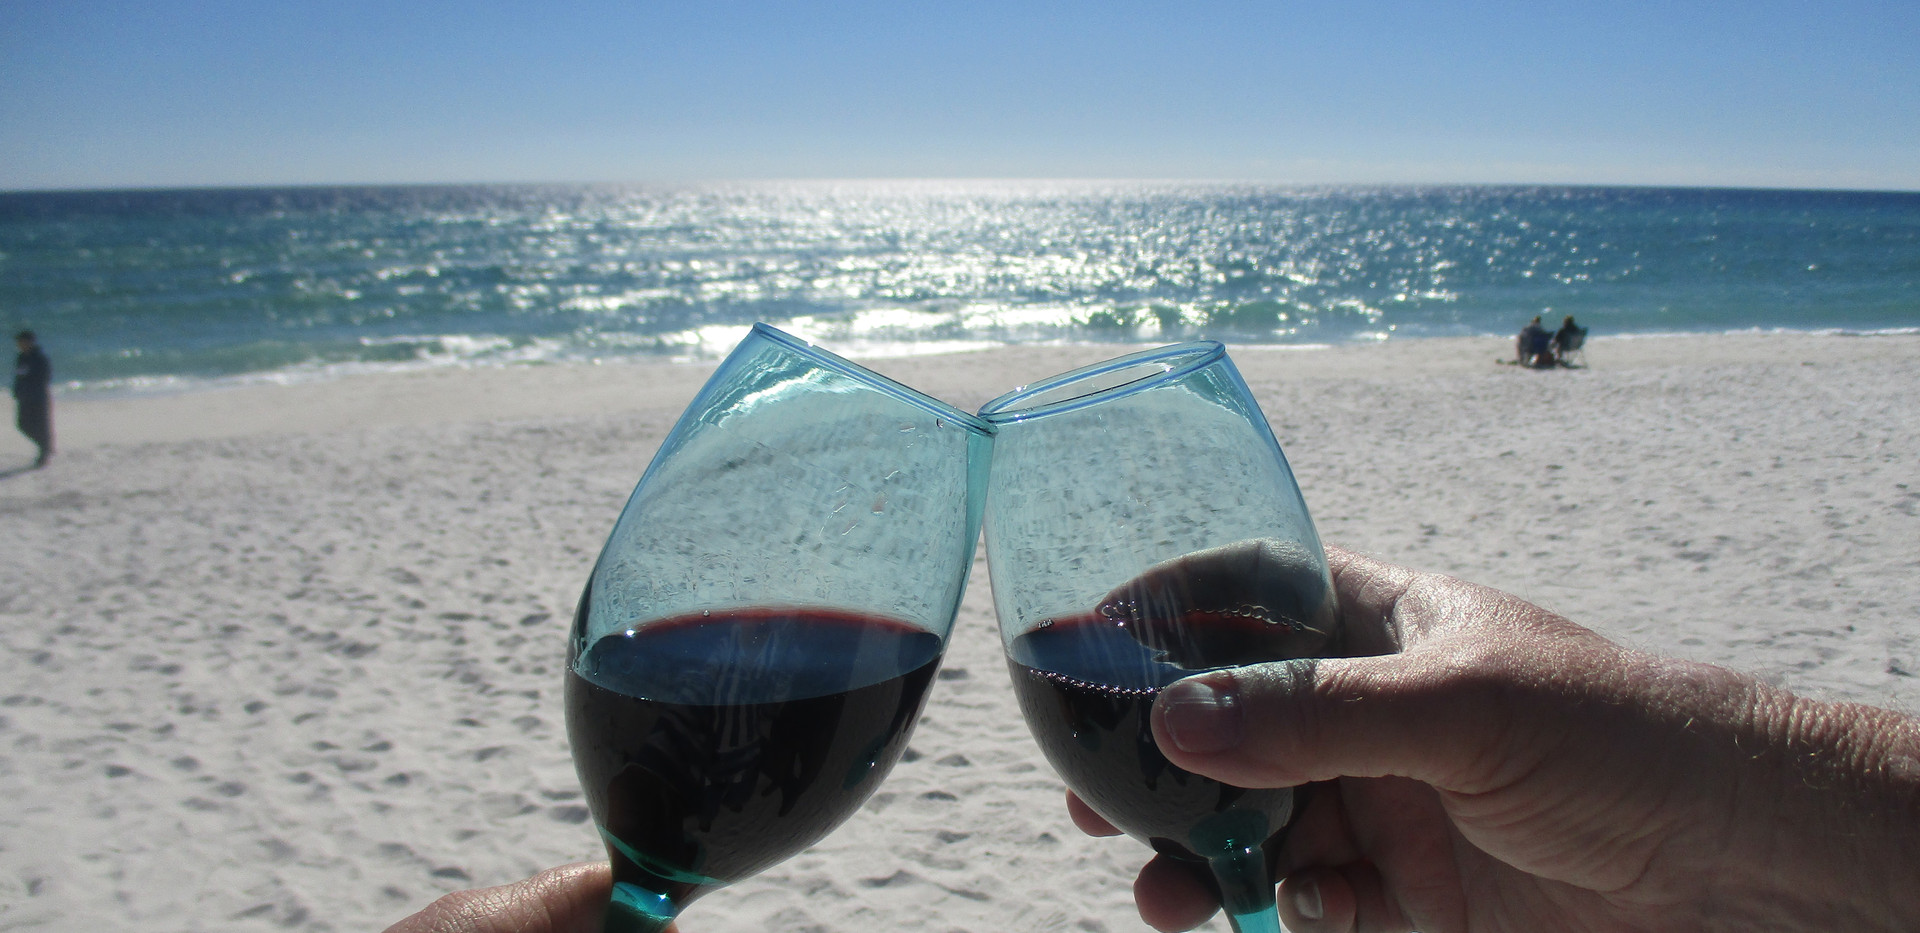 Cheers! Welcome to the beach!